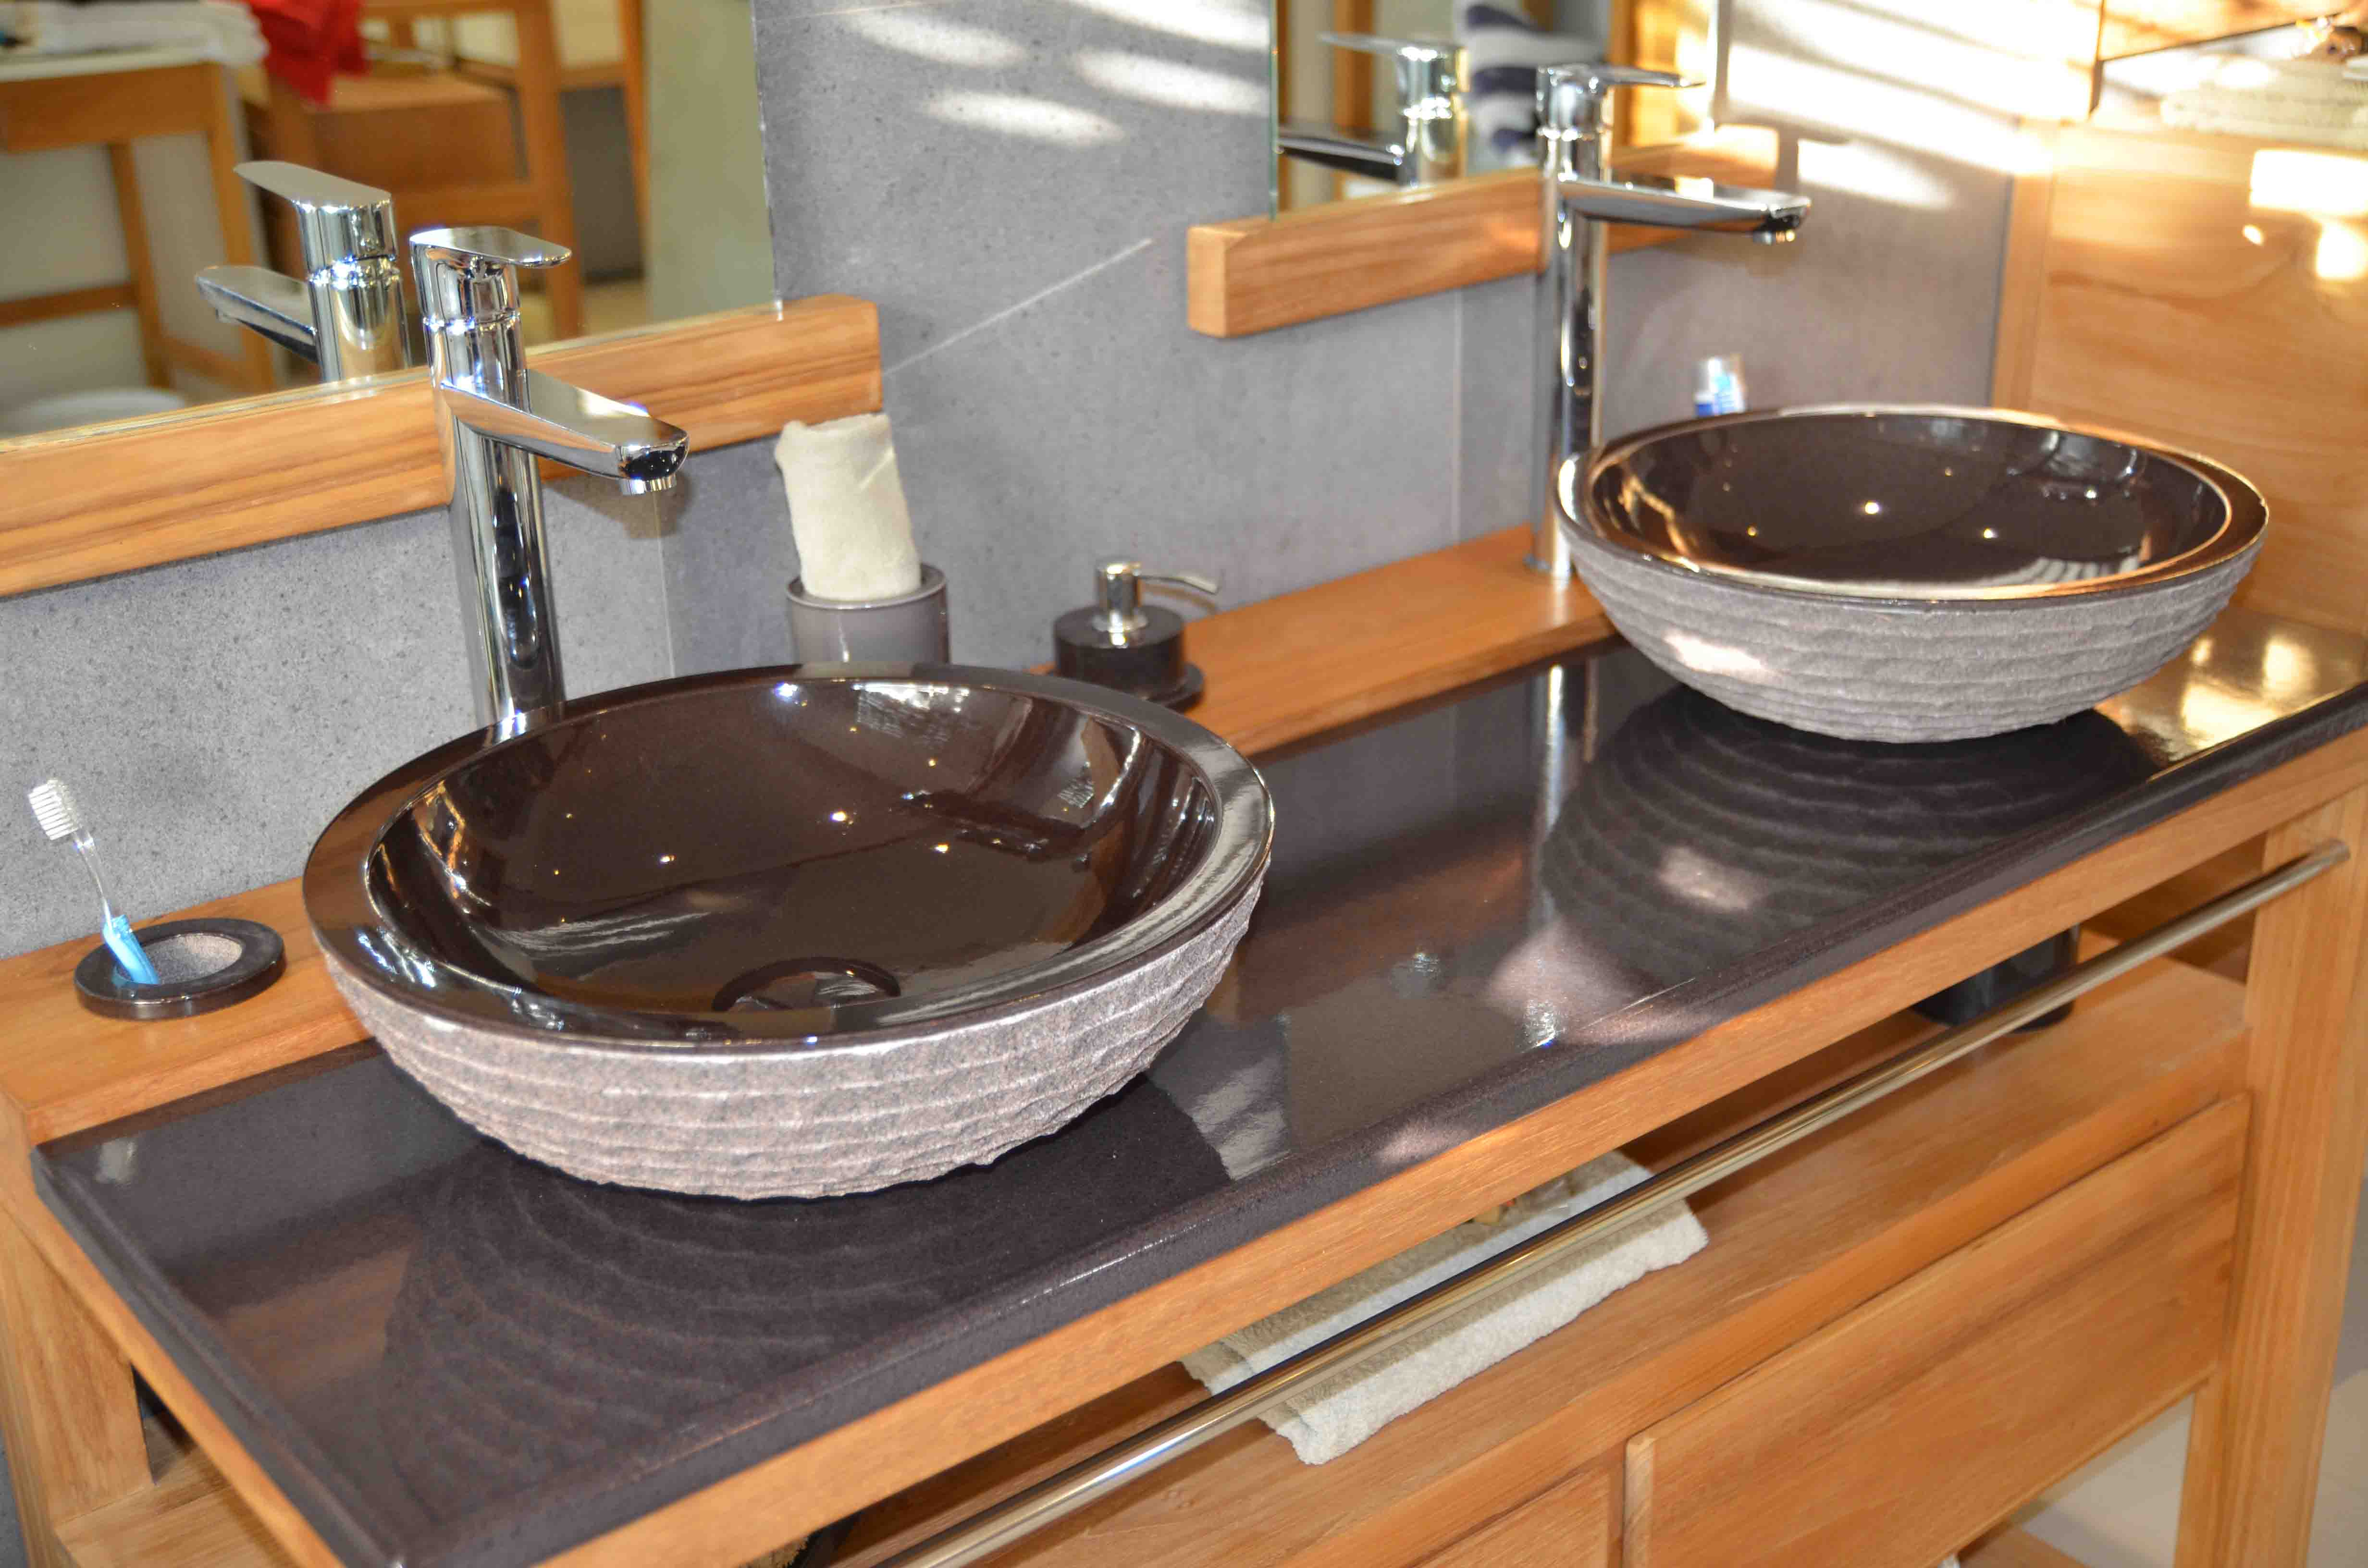 set-toba-130-double-sink-vasque-trenge-transparent-bois-teak-nature-couleur-lave-volcan-émaille-céramique-France-Luxe